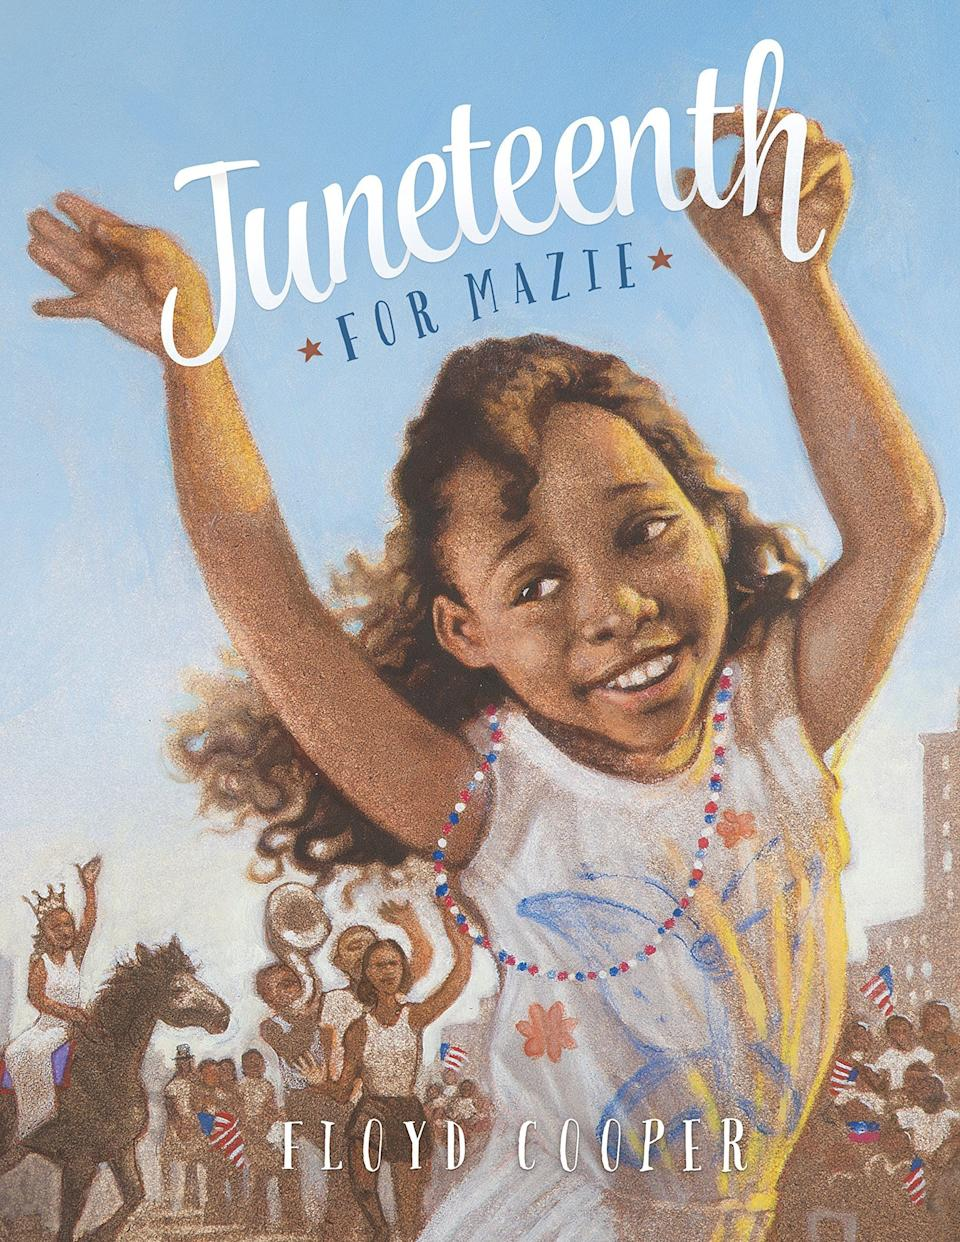 """Kids can accompany the titular character Mazie as she celebrates <a href=""""https://www.huffingtonpost.com/entry/juneteenth-photos_us_57640f77e4b0853f8bf08d36"""">Juneteenth</a>, the day in 1865 that marked the end of slavery in the United States, even though President Abraham Lincoln had passed the Emancipation Proclamation two years earlier. (By Floyd Cooper)"""